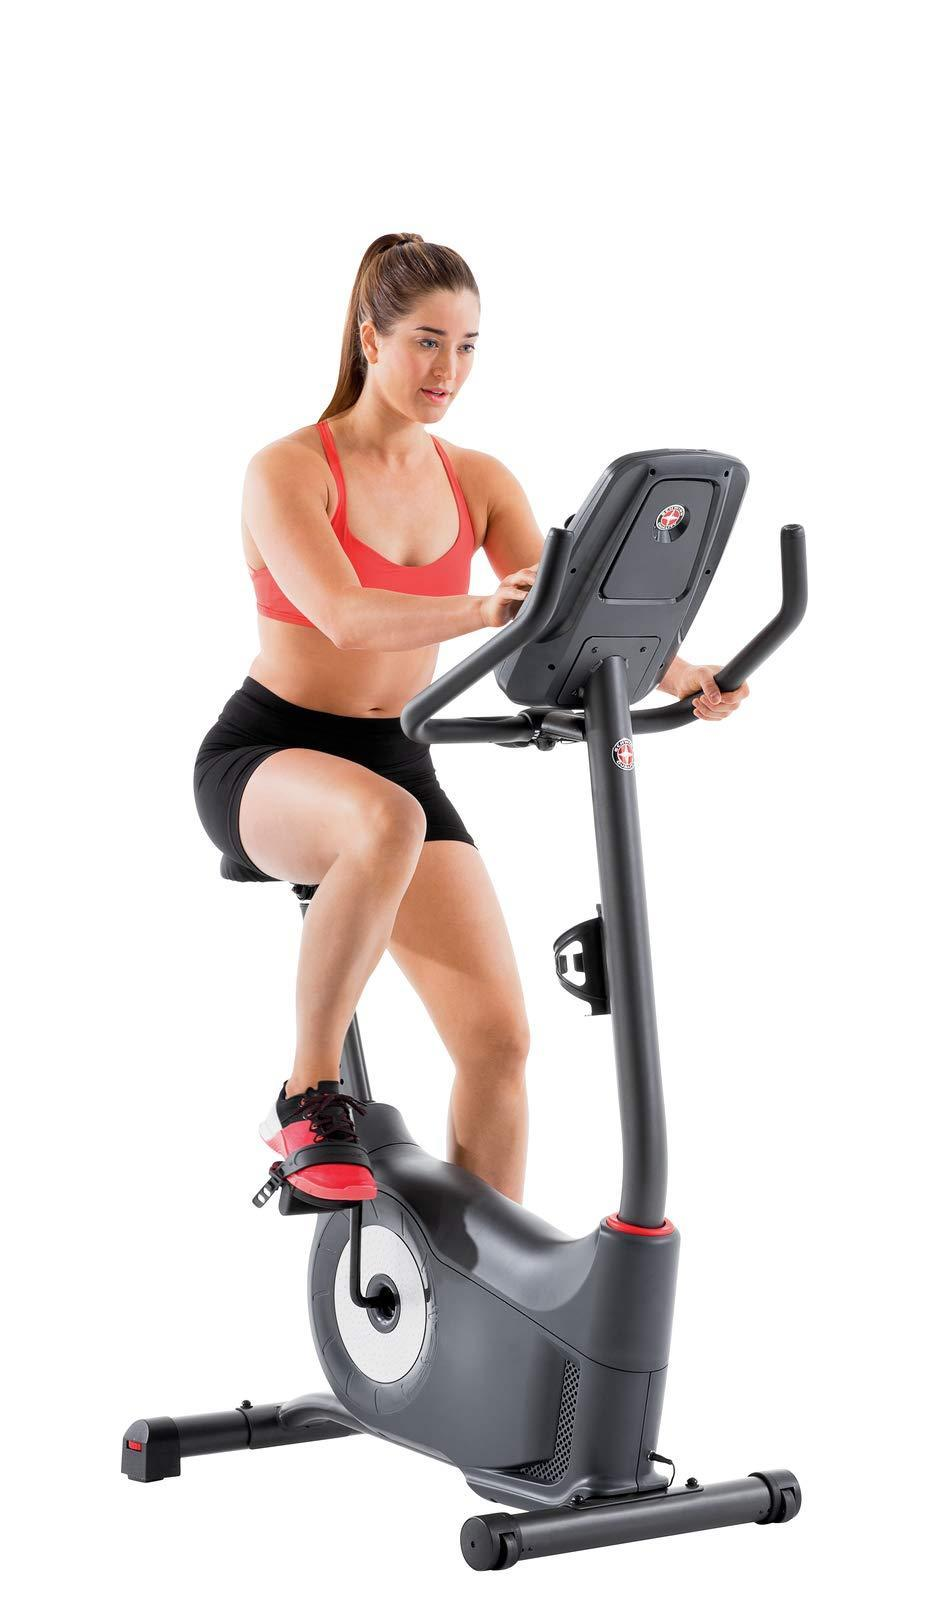 """<br><br><strong>Schwinn</strong> Upright Bike Series, $, available at <a href=""""https://amzn.to/2H1SIev"""" rel=""""nofollow noopener"""" target=""""_blank"""" data-ylk=""""slk:Amazon"""" class=""""link rapid-noclick-resp"""">Amazon</a>"""